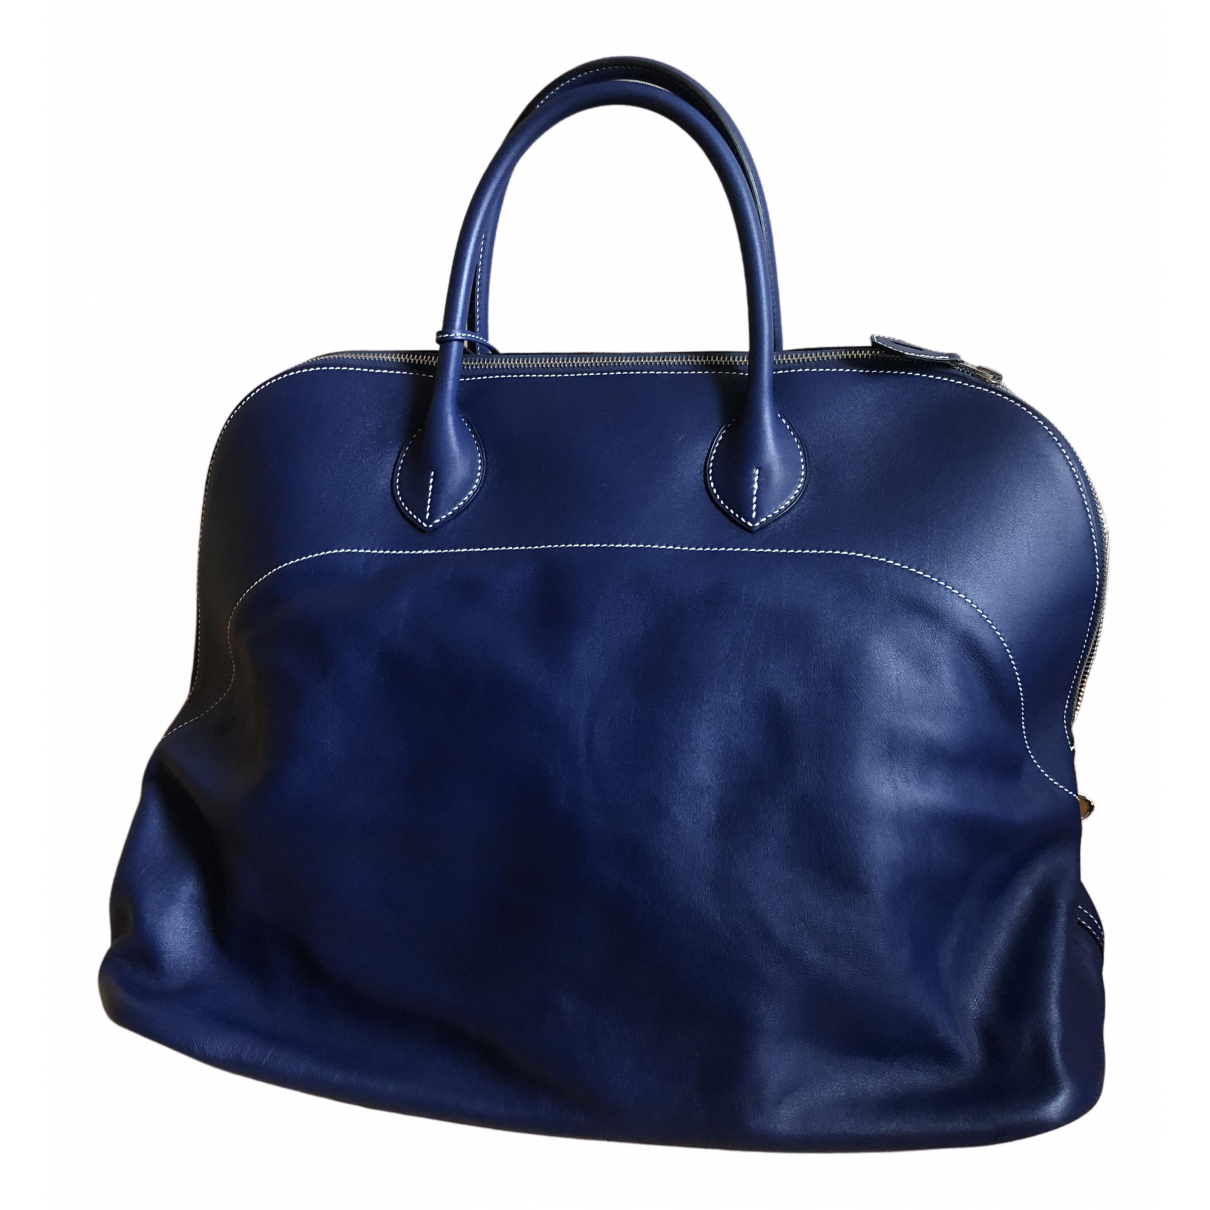 Hermès Bolide Navy Leather Travel bag for Women N